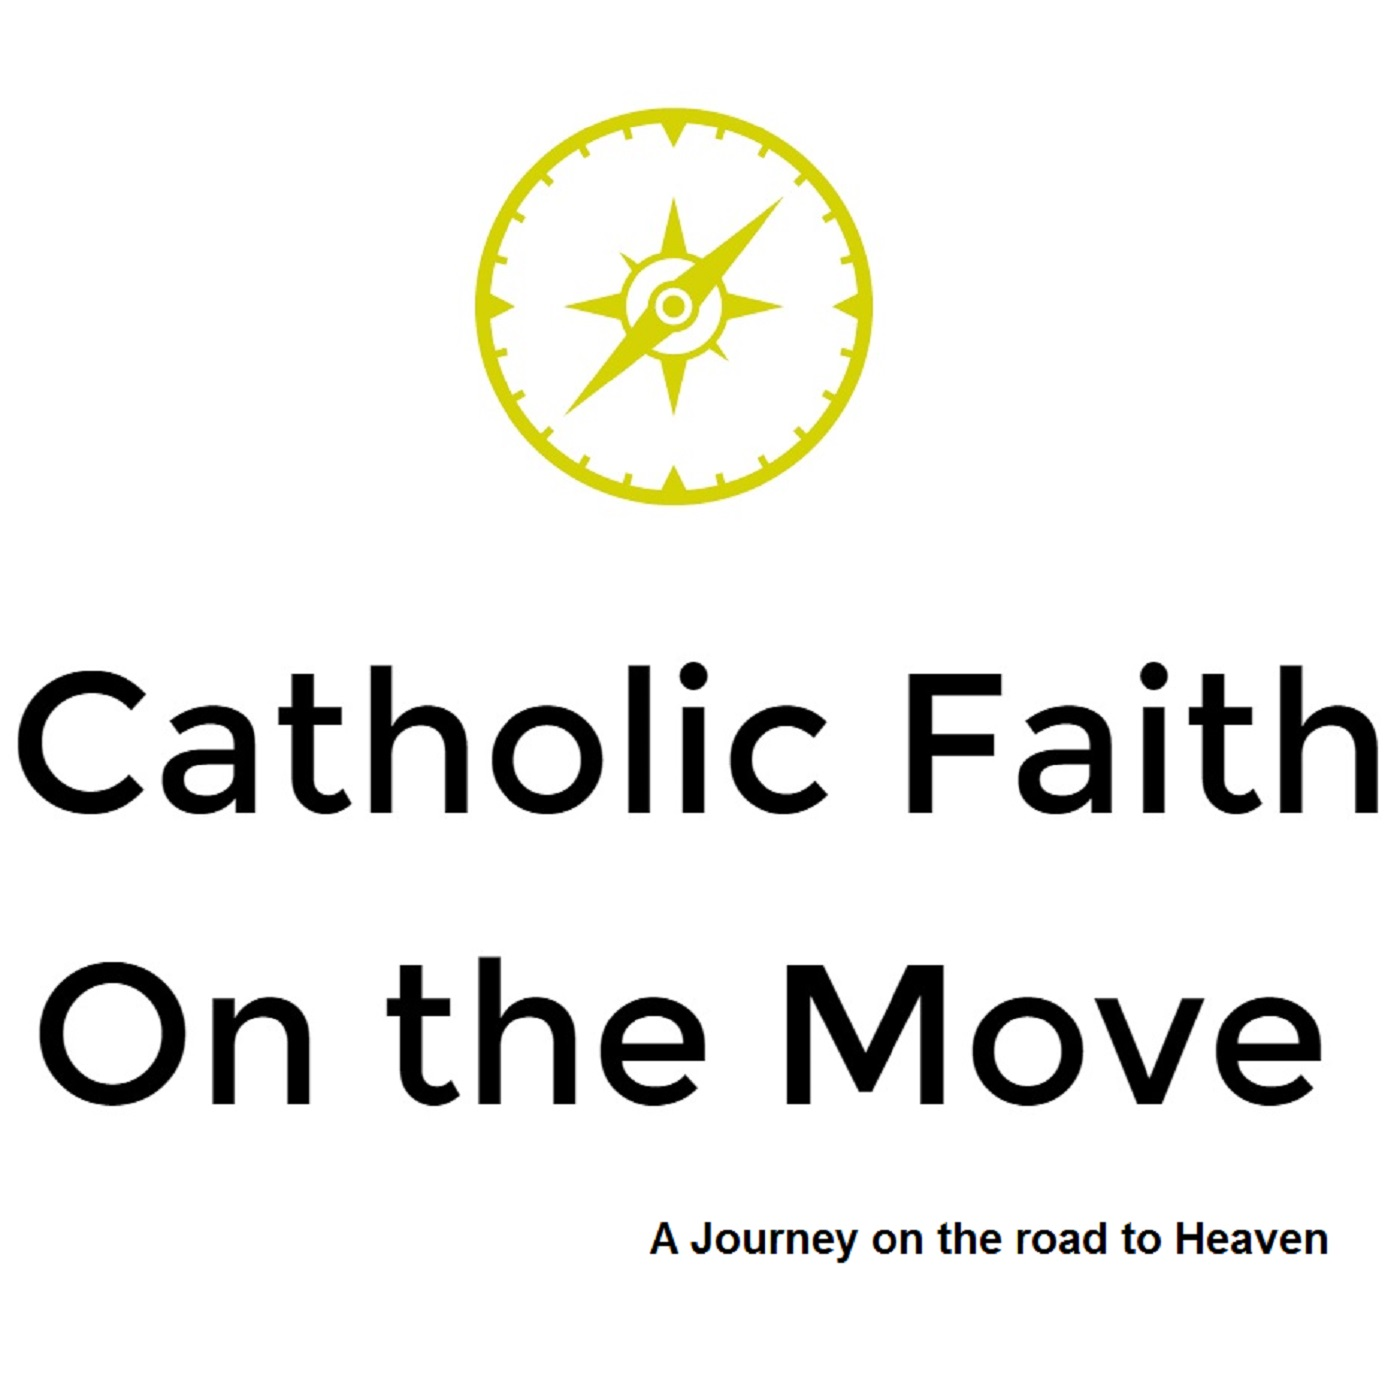 Catholic Faith on the Move Podcast - Catholic Faith On the Move